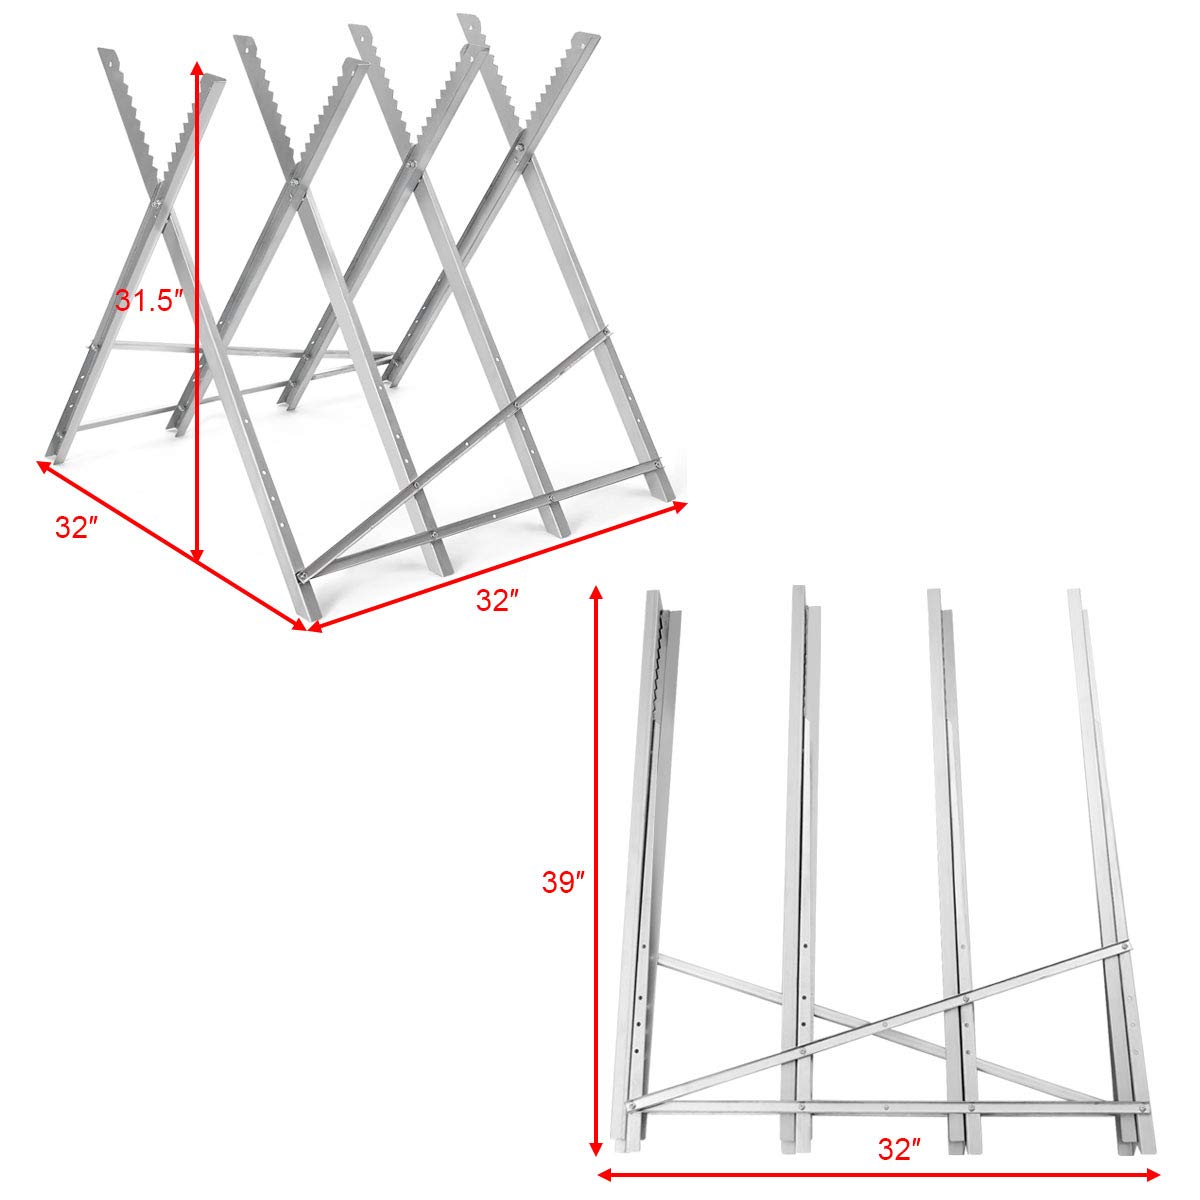 Goplus Portable Sawhorse Heavy Duty Adjustable Steel Work Support Foldable Sawhorse Stand 220 lbs Weight Capacity by Goplus (Image #4)